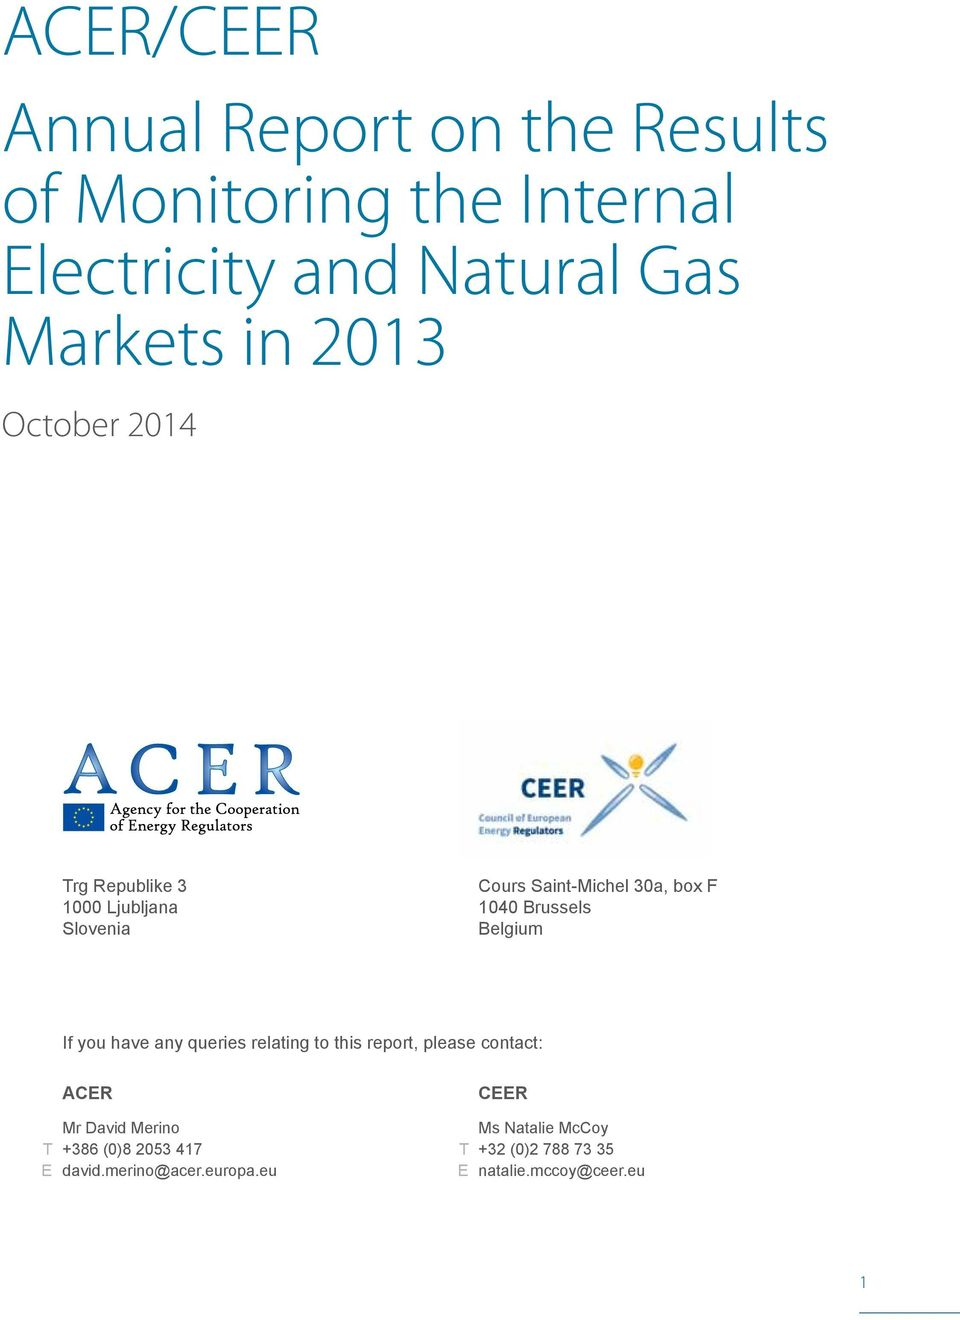 Belgium If you have any queries relating to this report, please contact: ACER Mr David Merino T +386